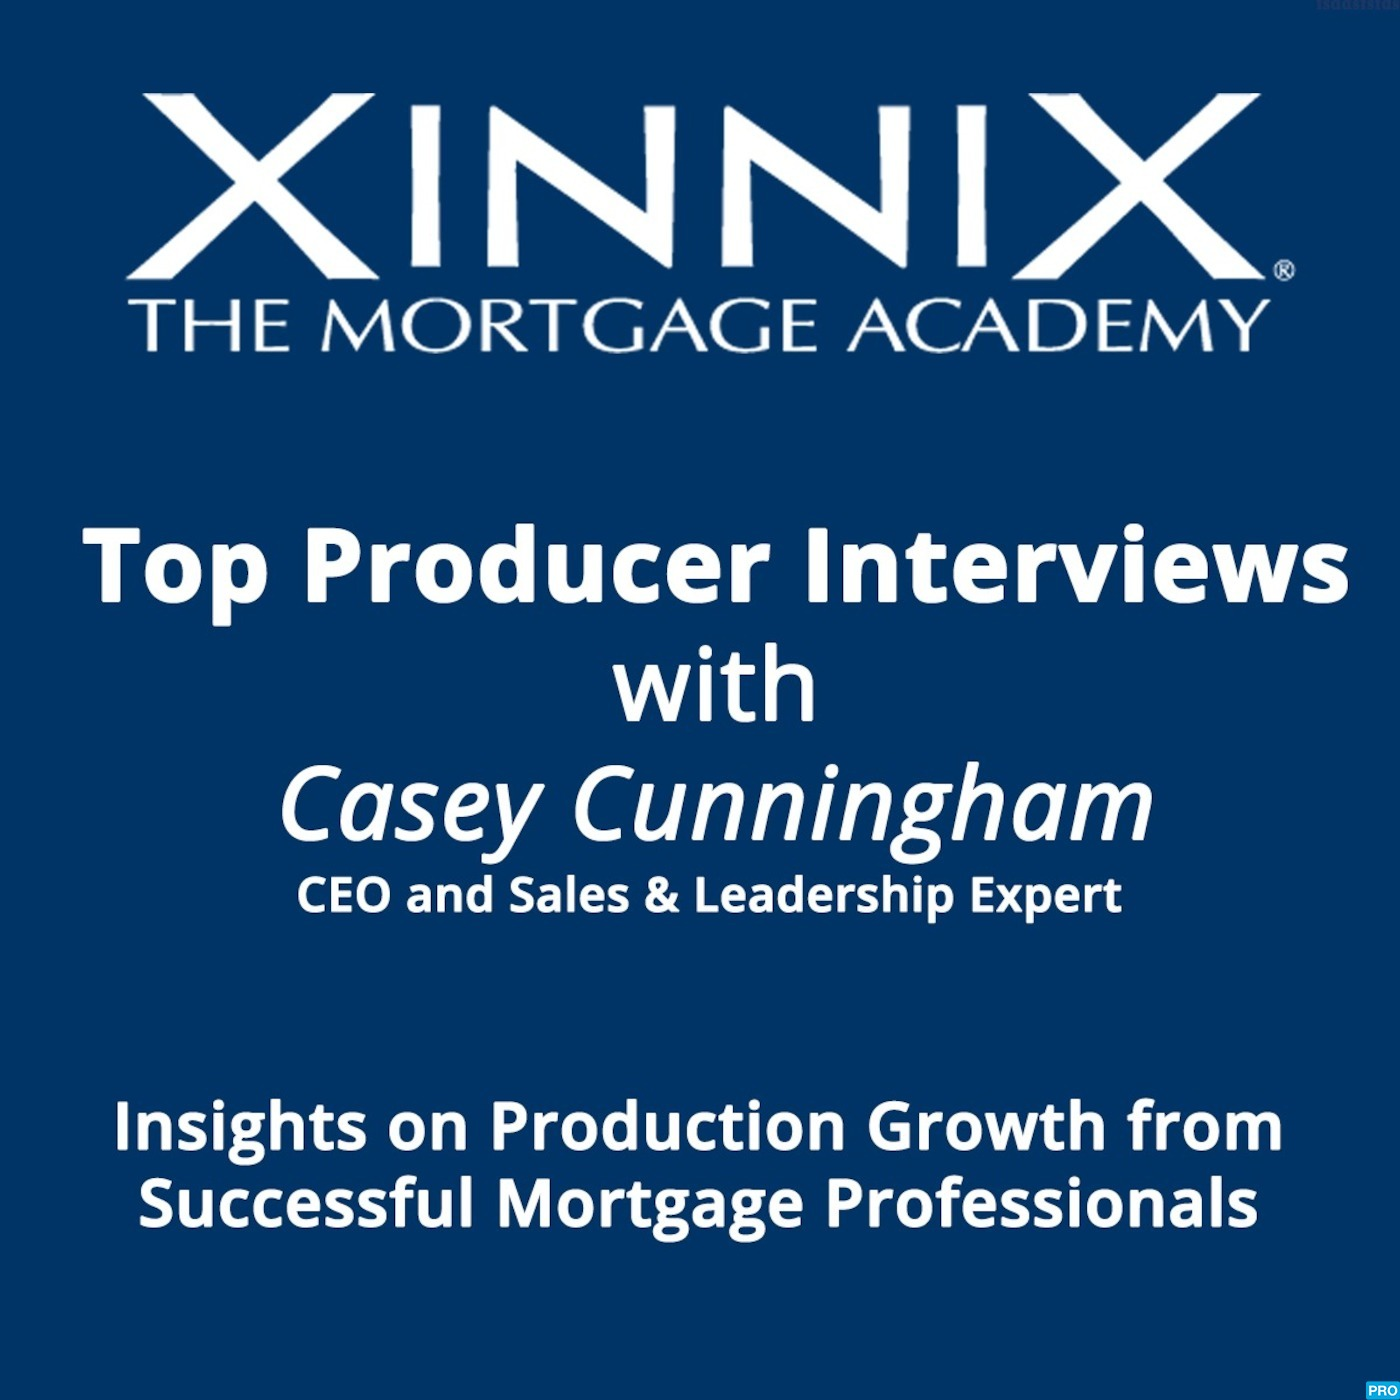 Top Producer Interviews with Casey Cunningham